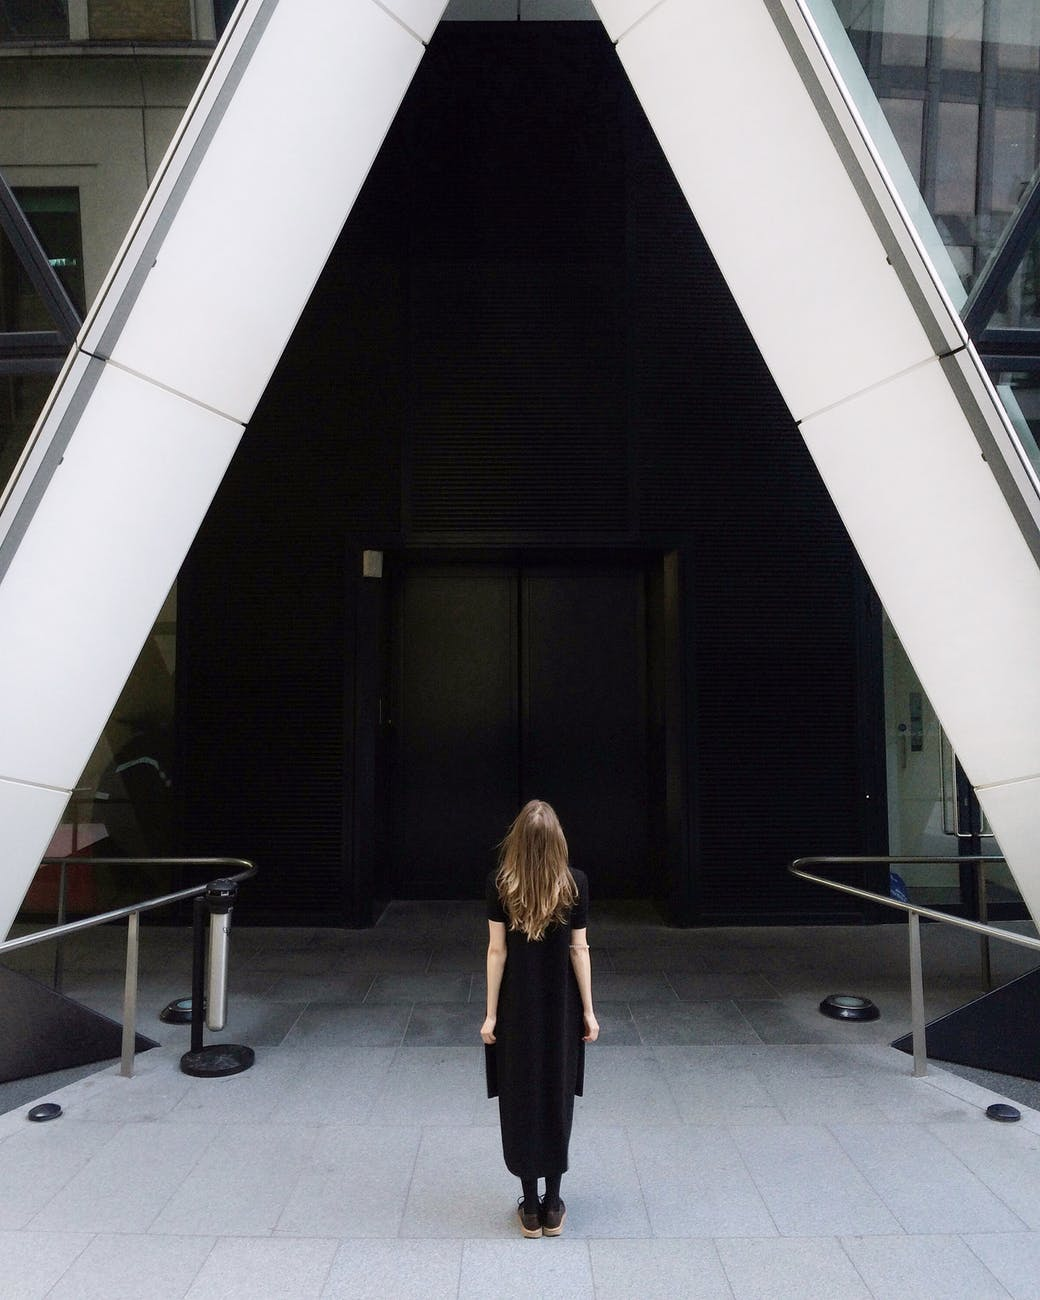 back view of a woman in black dress standing in front of the building